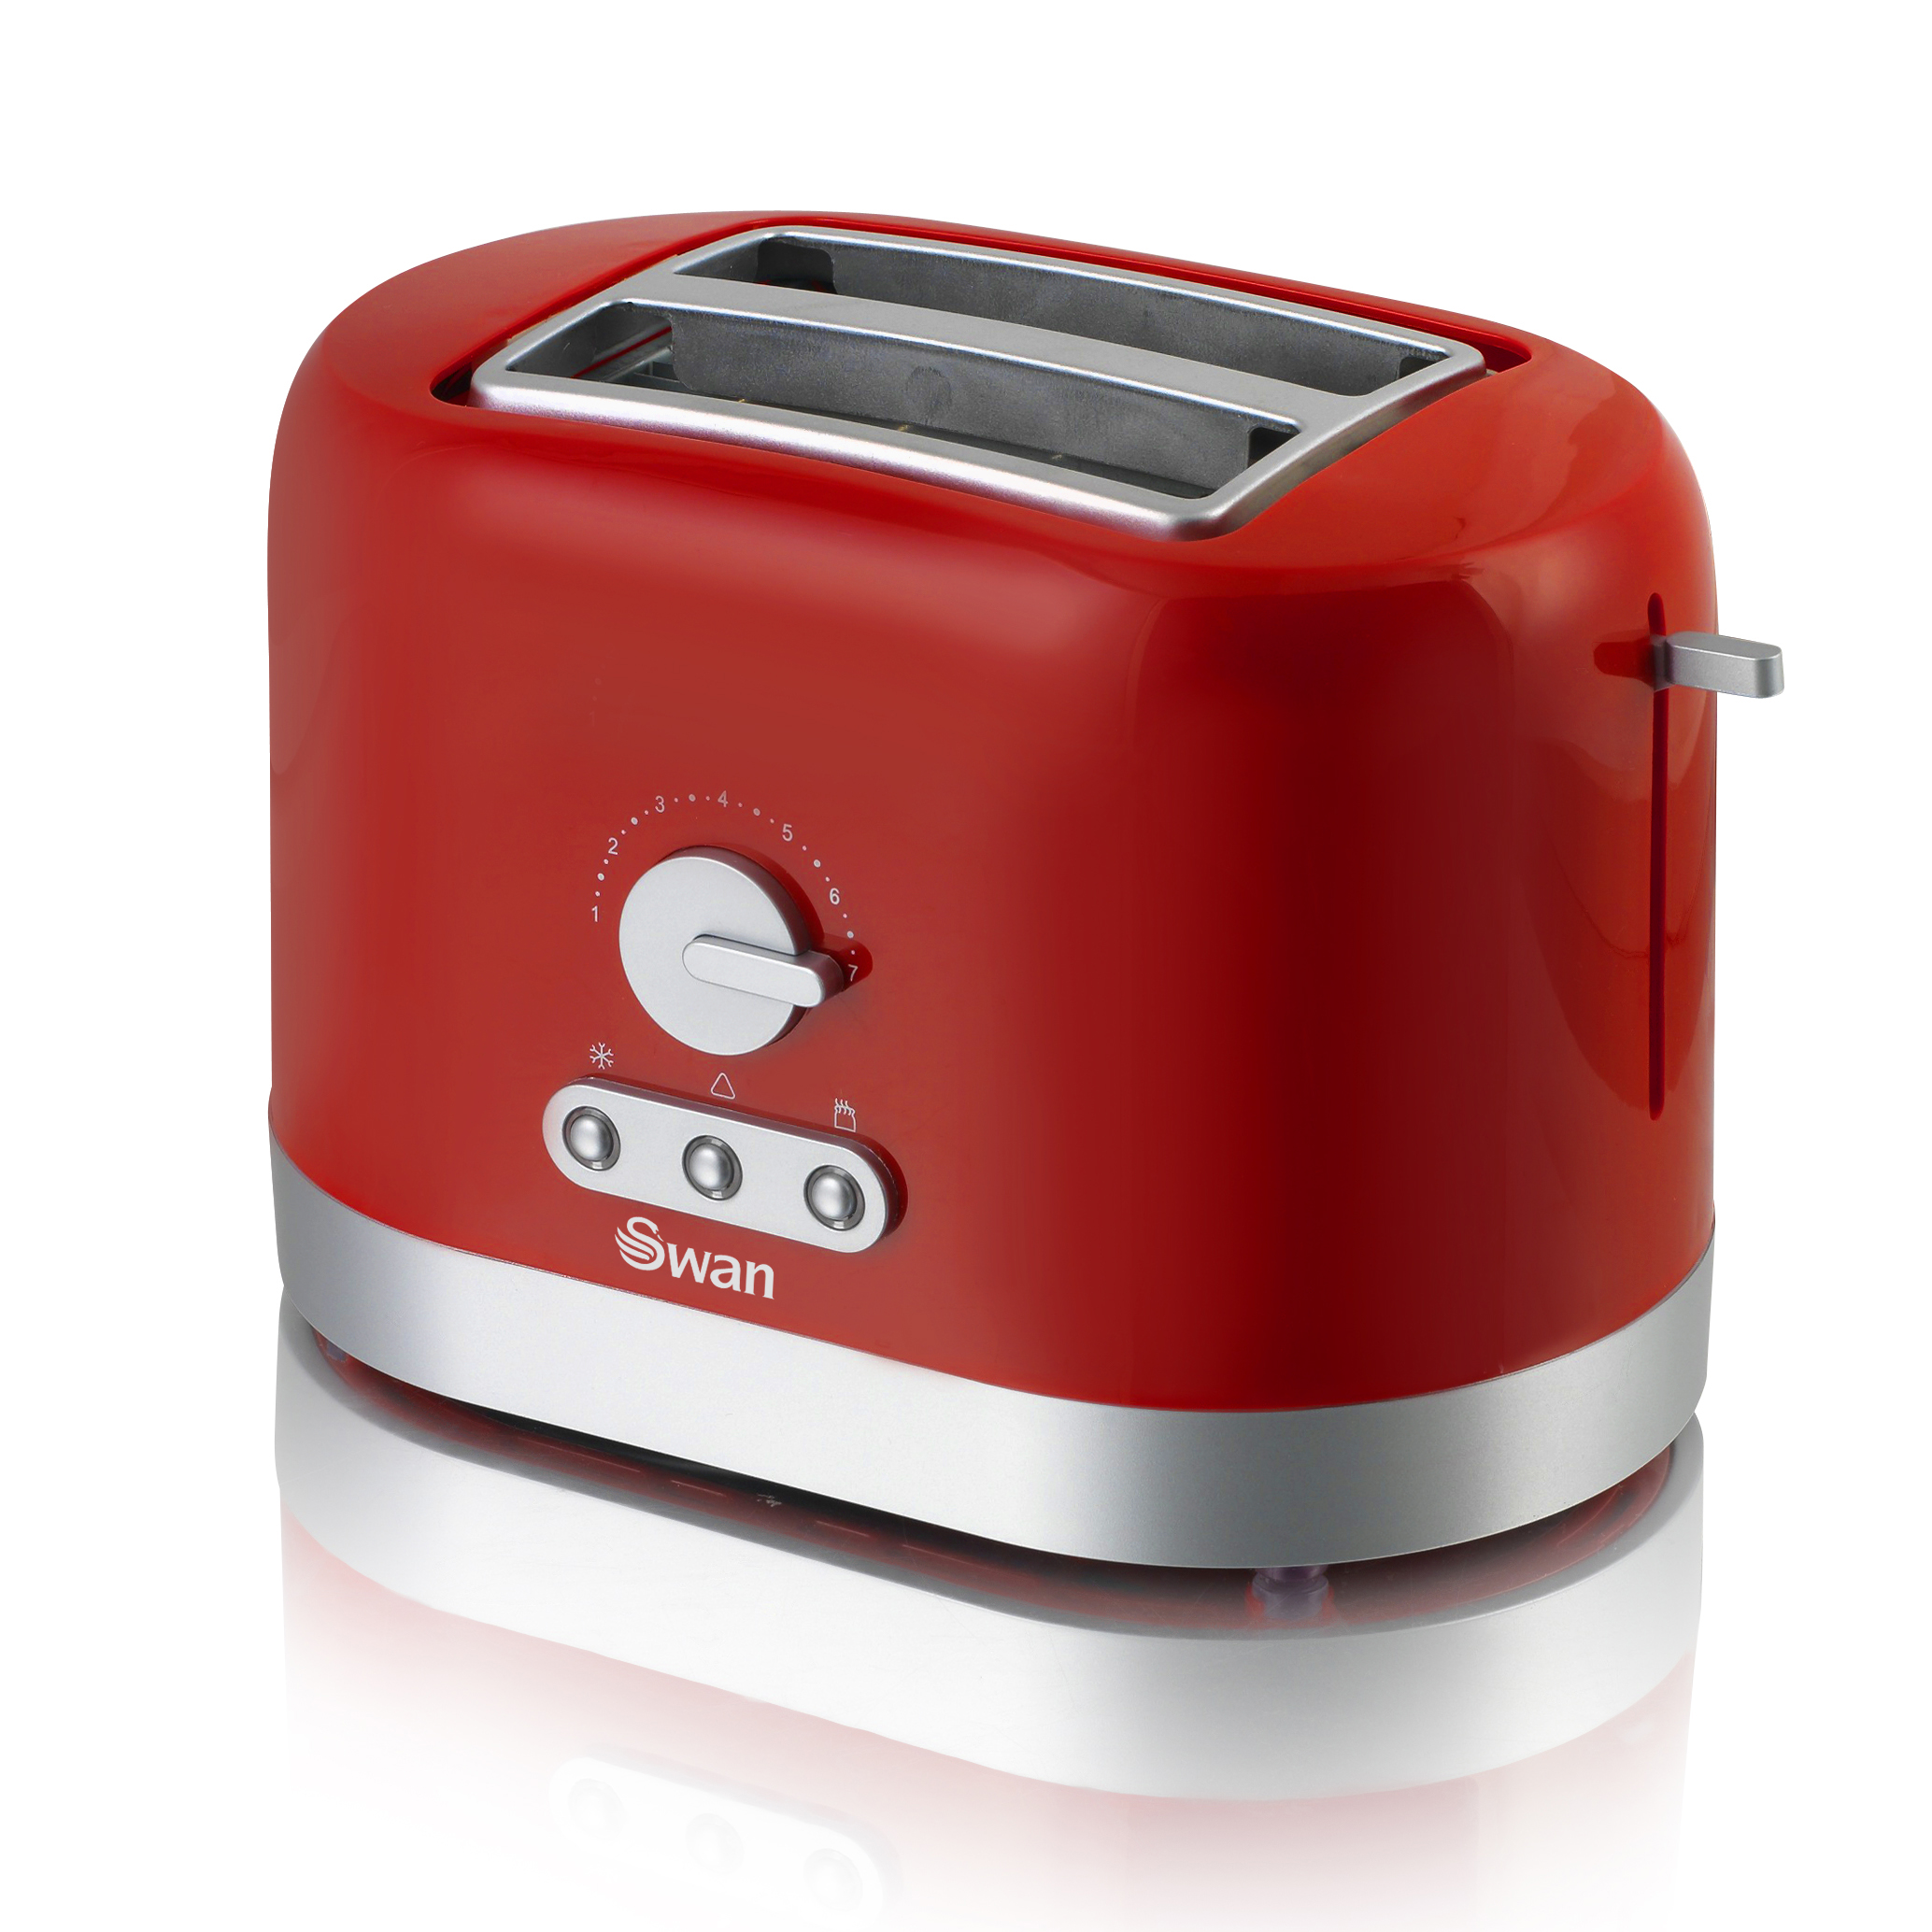 Swan 2 Slice Red Toaster - Red No Colour